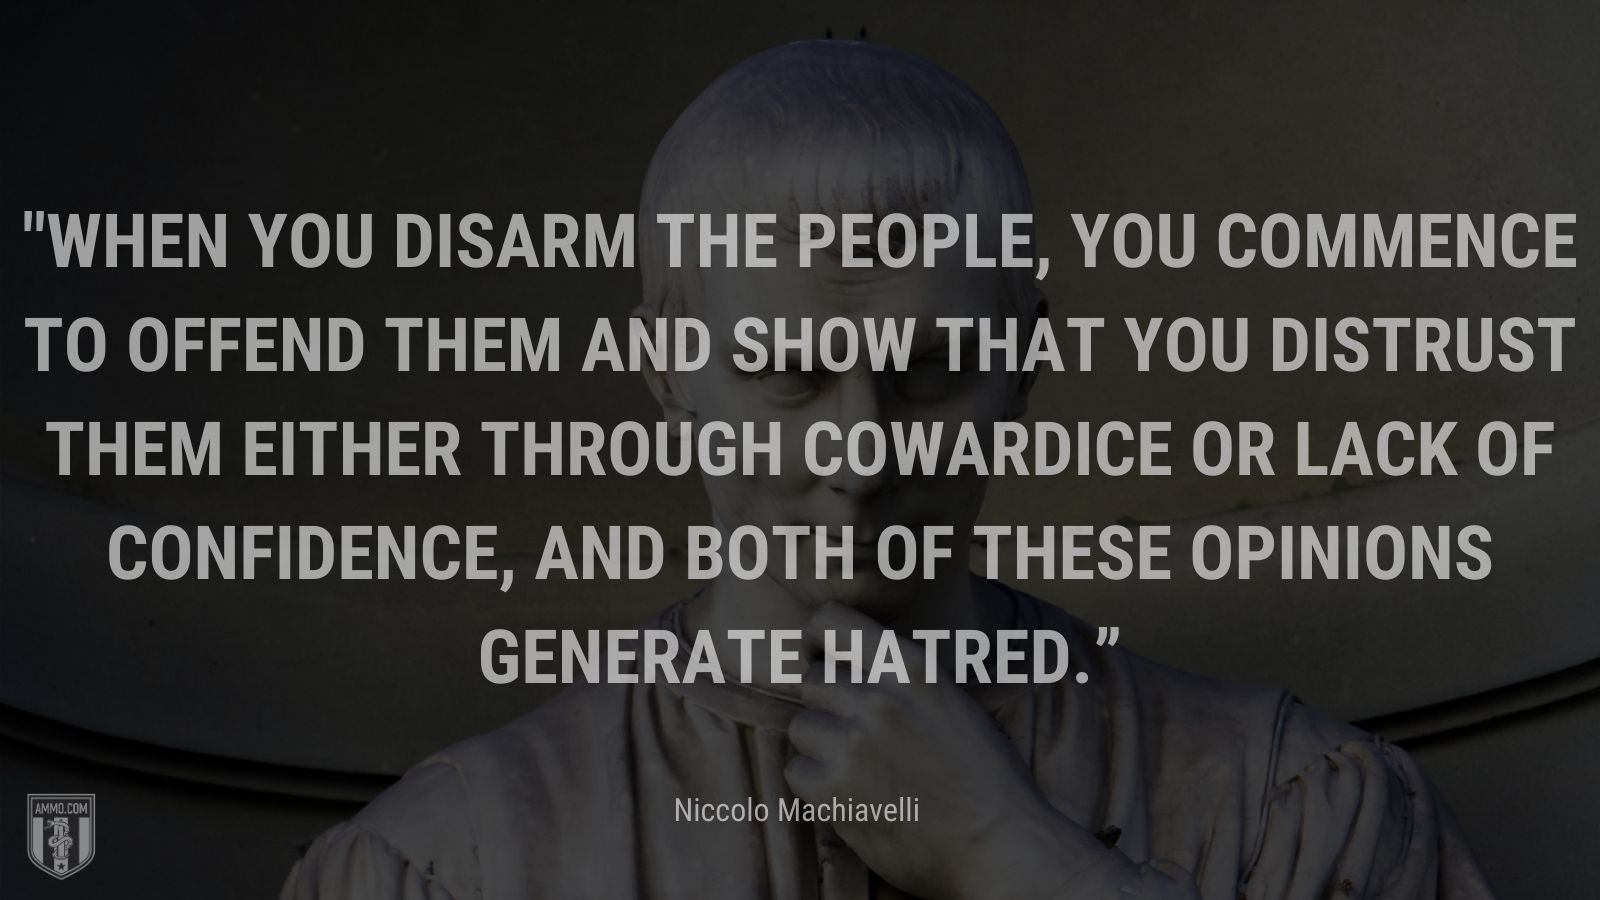 """""""When you disarm the people, you commence to offend them and show that you distrust them either through cowardice or lack of confidence, and both of these opinions generate hatred."""" - Niccolo Machiavelli"""